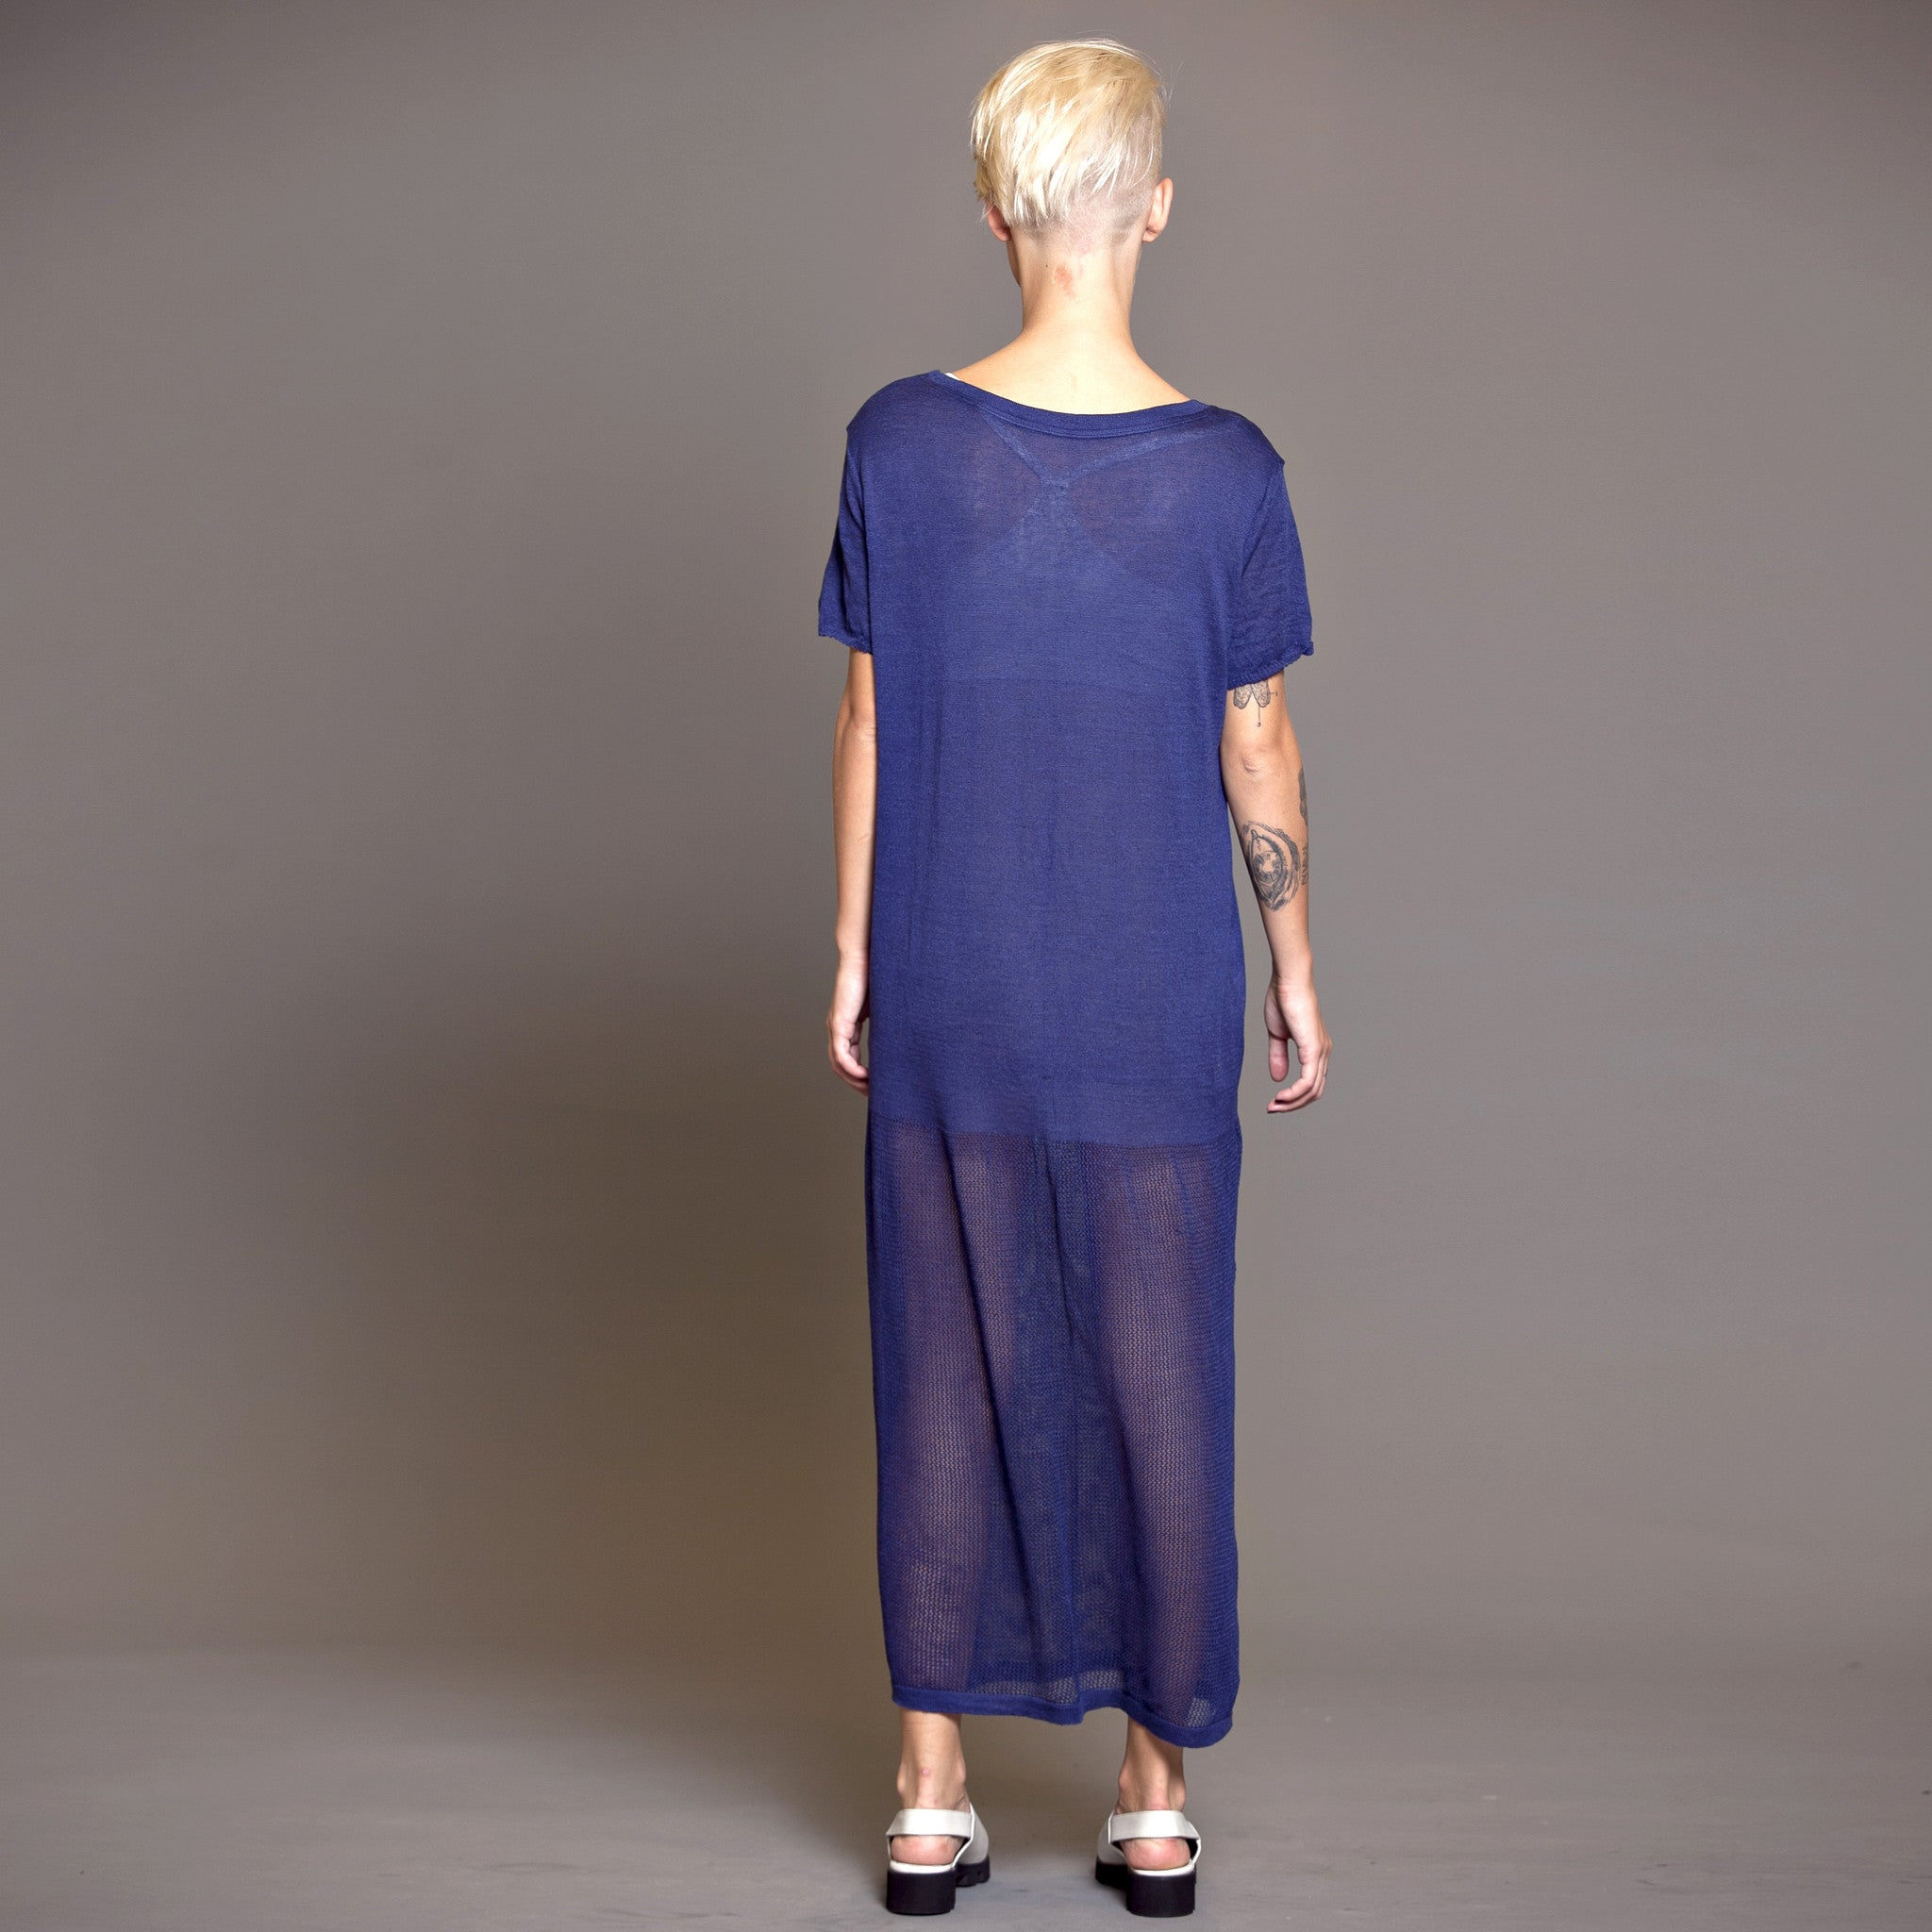 Maxi T-shirt dress, Viscose linen knit - DuendeFashion  - 4